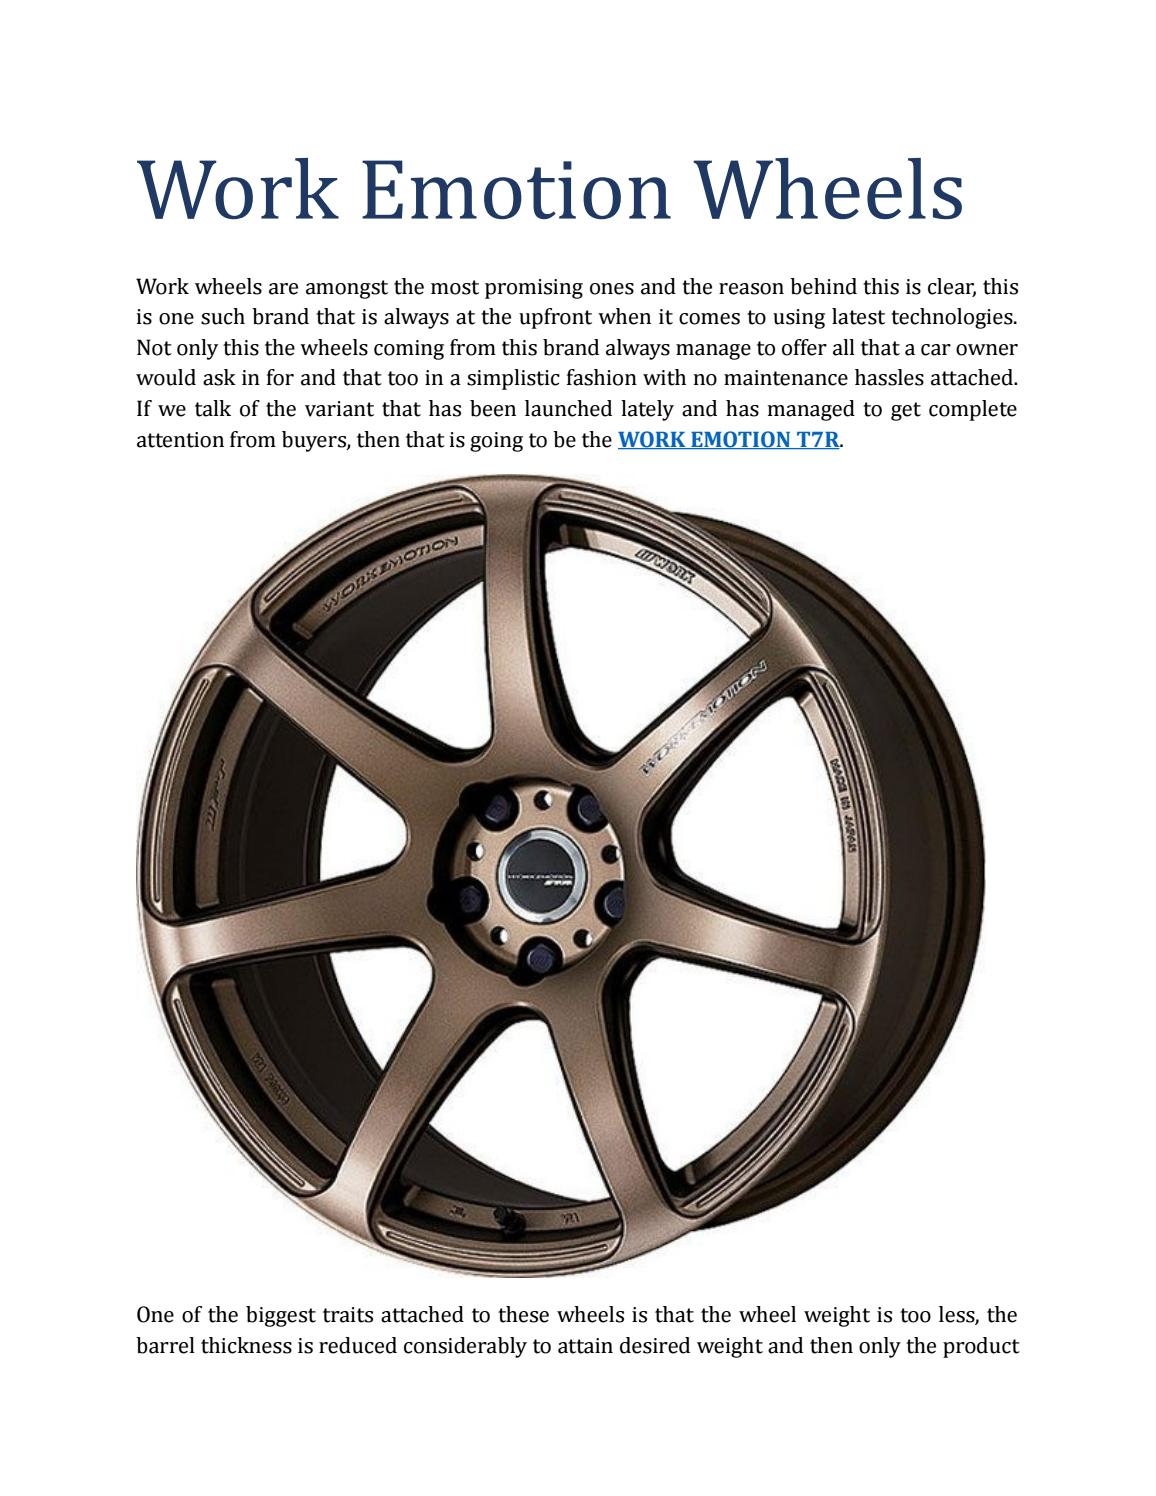 Work Emotion Wheels By Emotiont7r Issuu